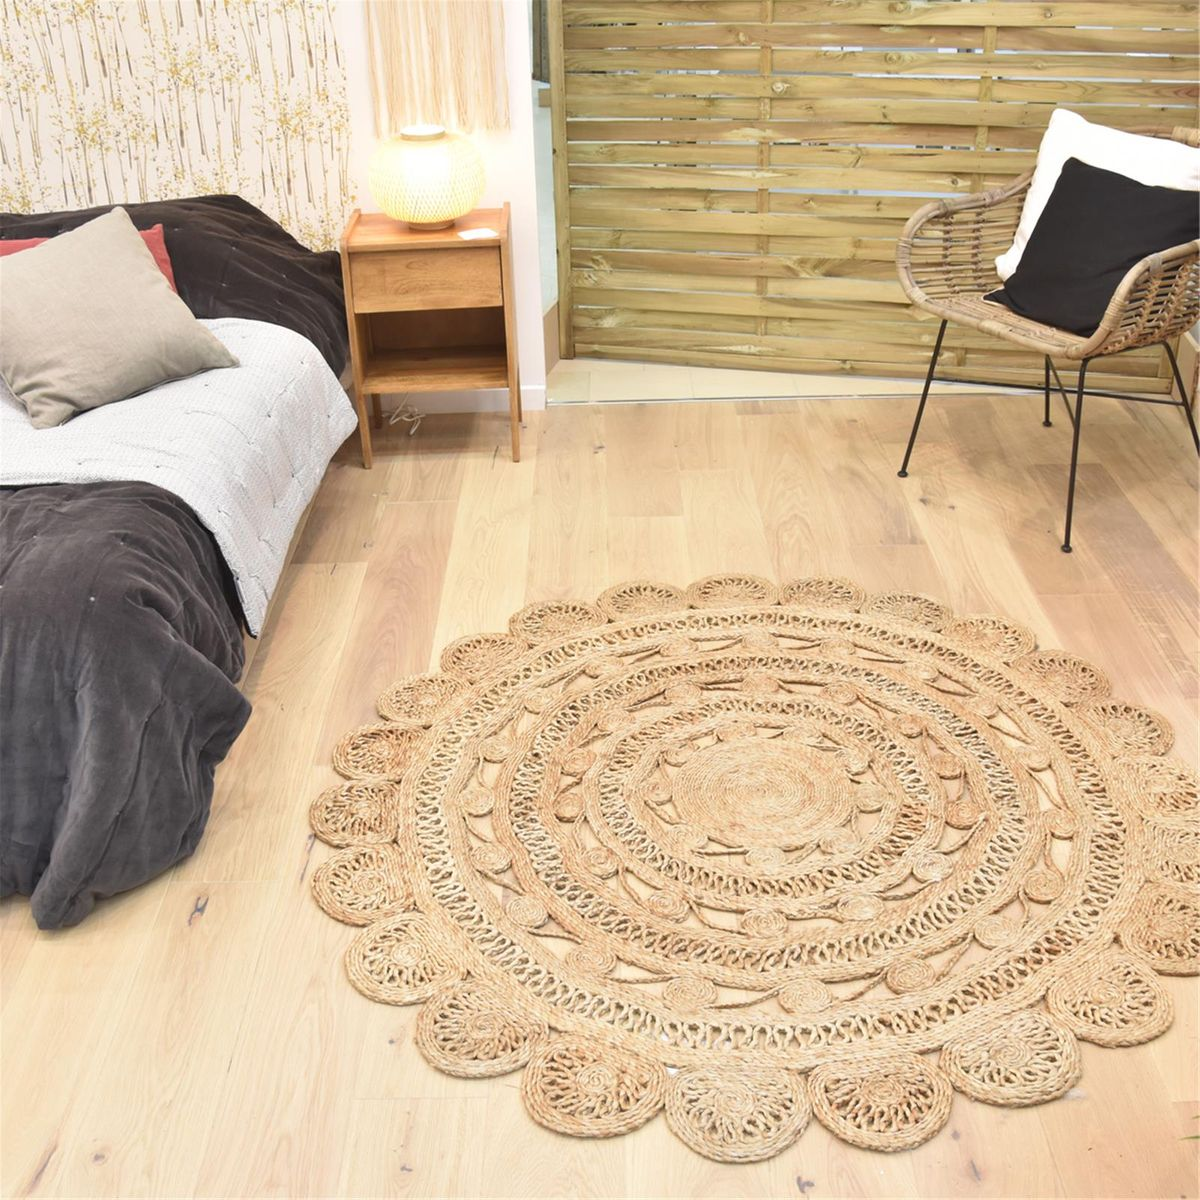 tapis rond en jute naturel tiss main fleur d150 cm decoclico. Black Bedroom Furniture Sets. Home Design Ideas